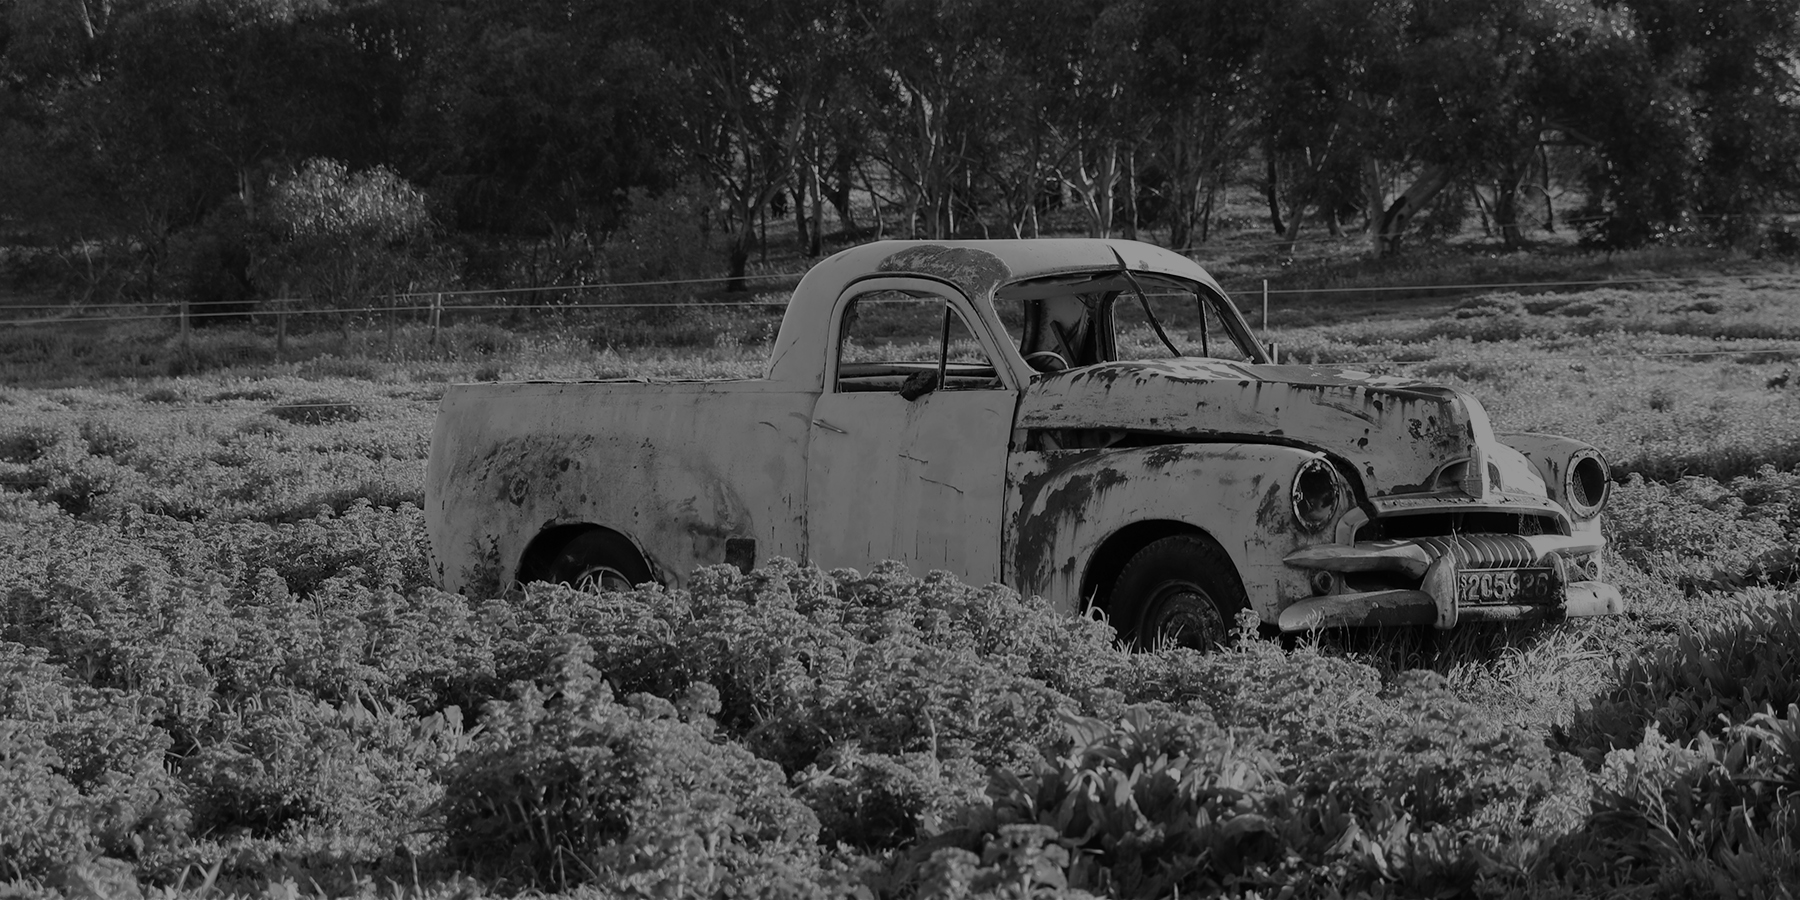 Black and white photo of an old beat up car in a field